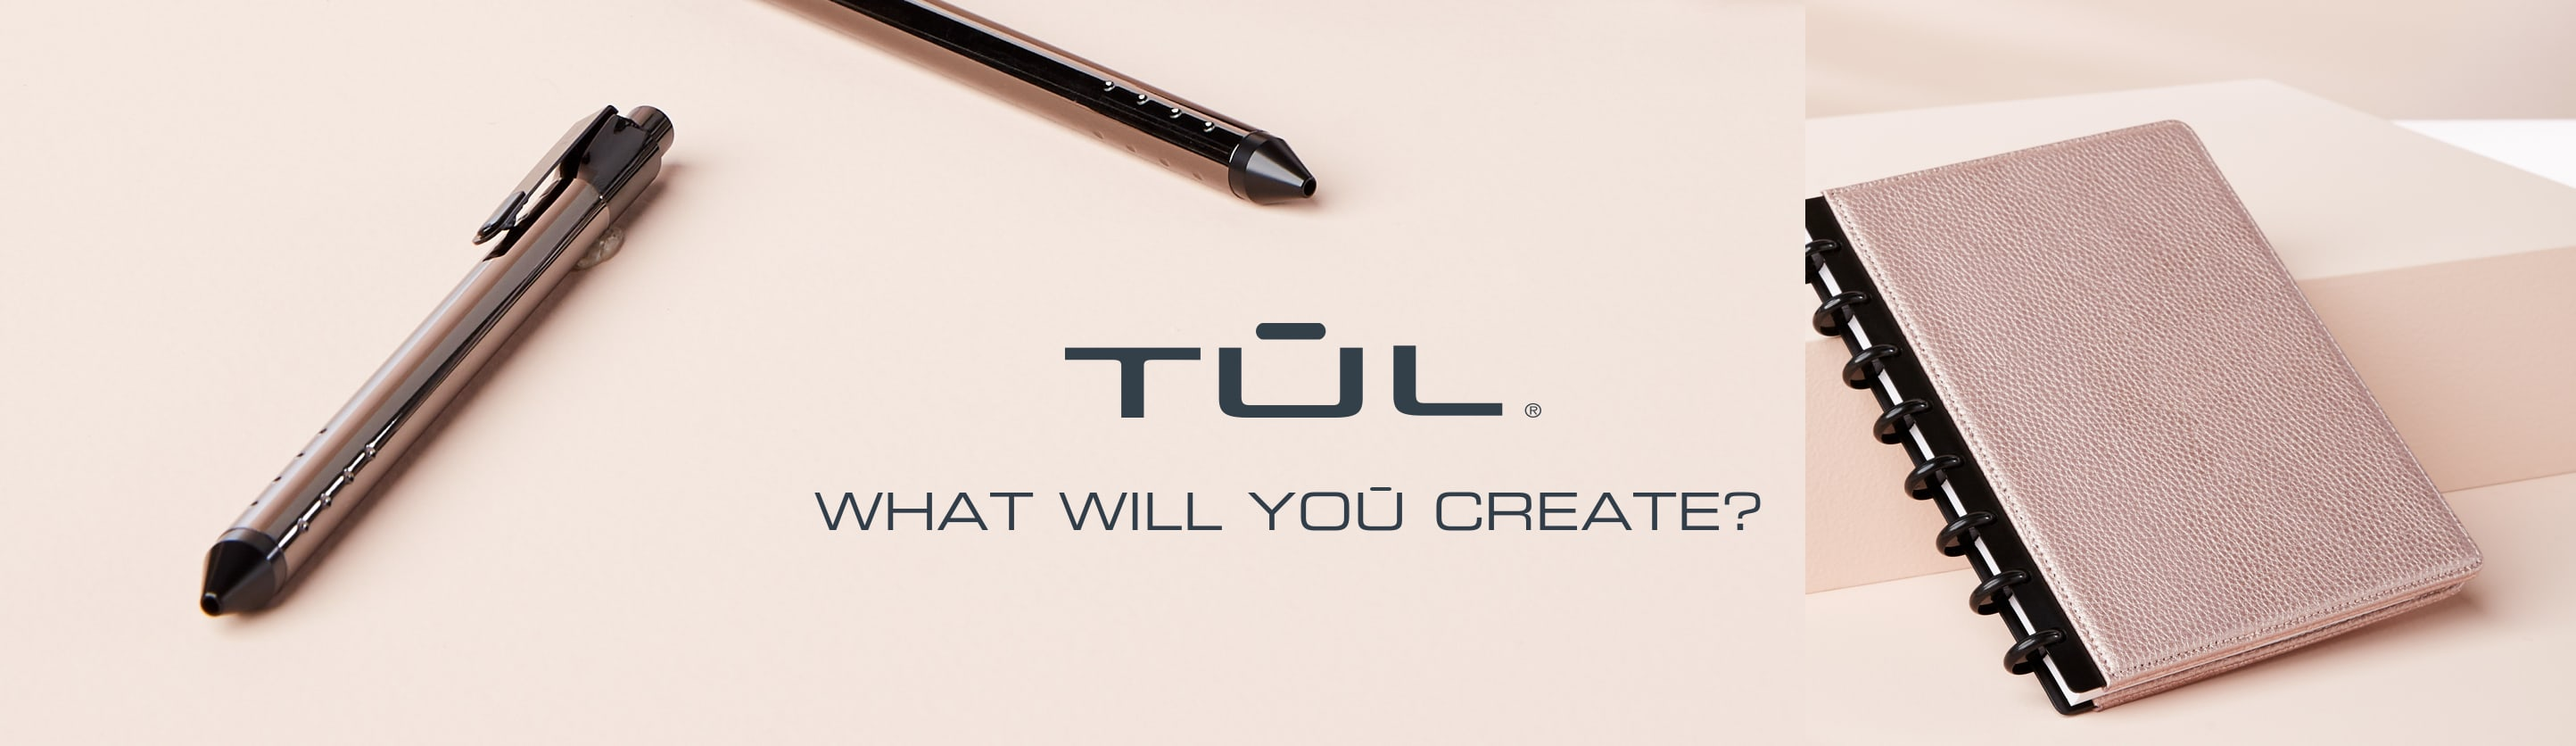 TUL. What will you create?